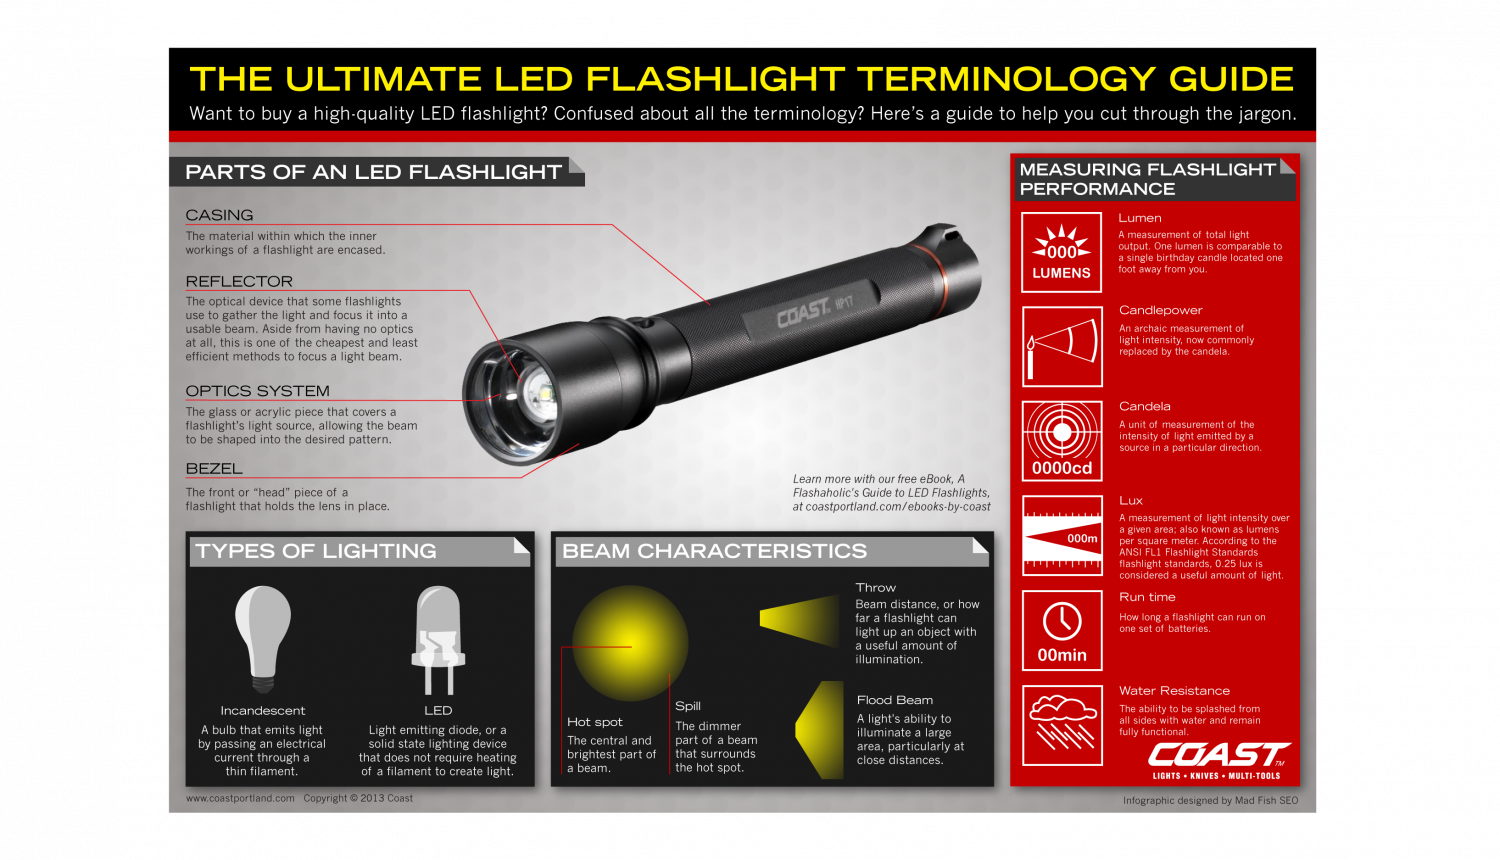 The Ultimate LED Flashlight Terminology Guide  Infographic